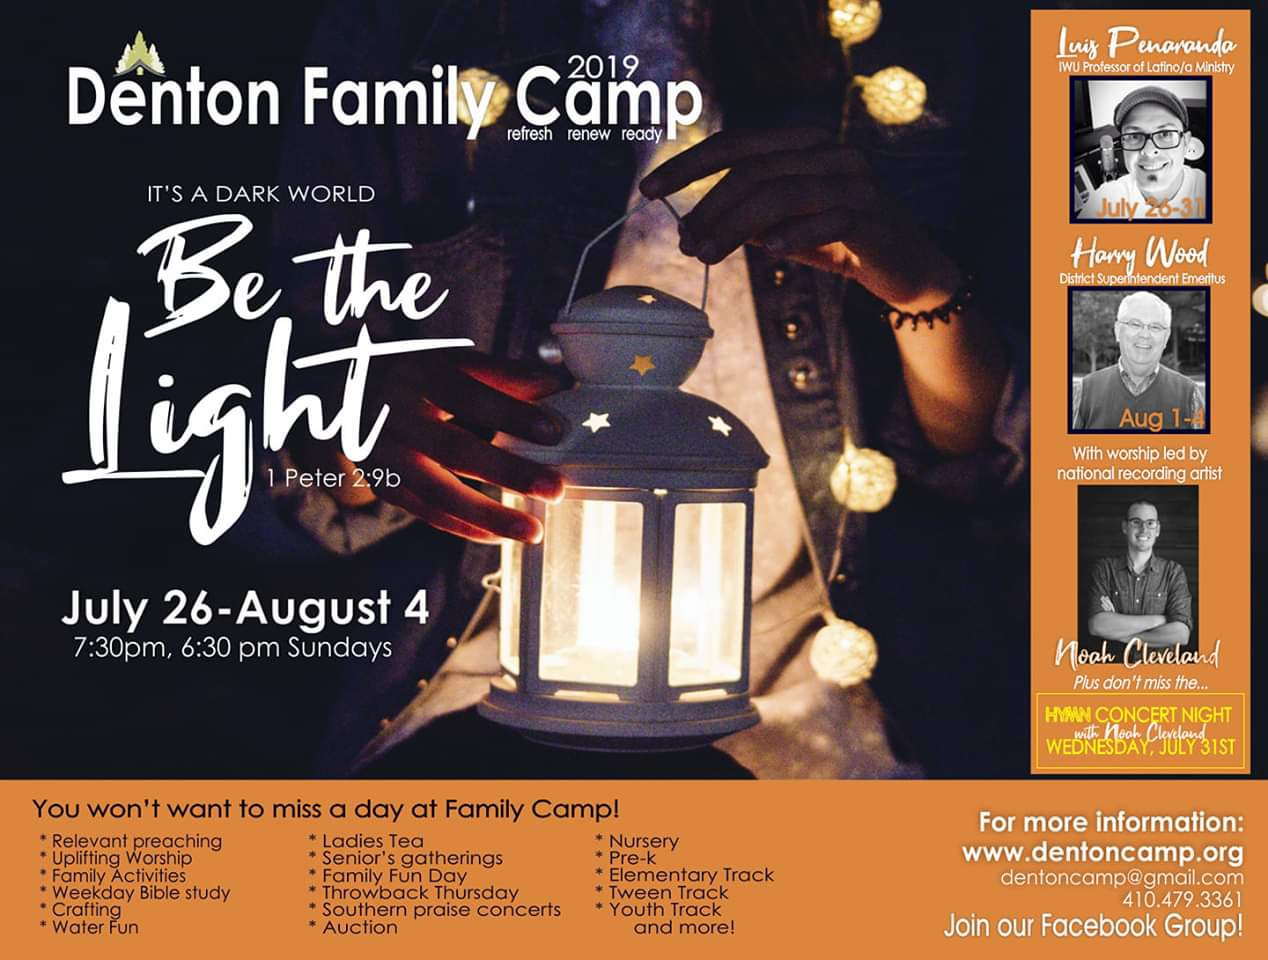 Denton Family Camp 2019